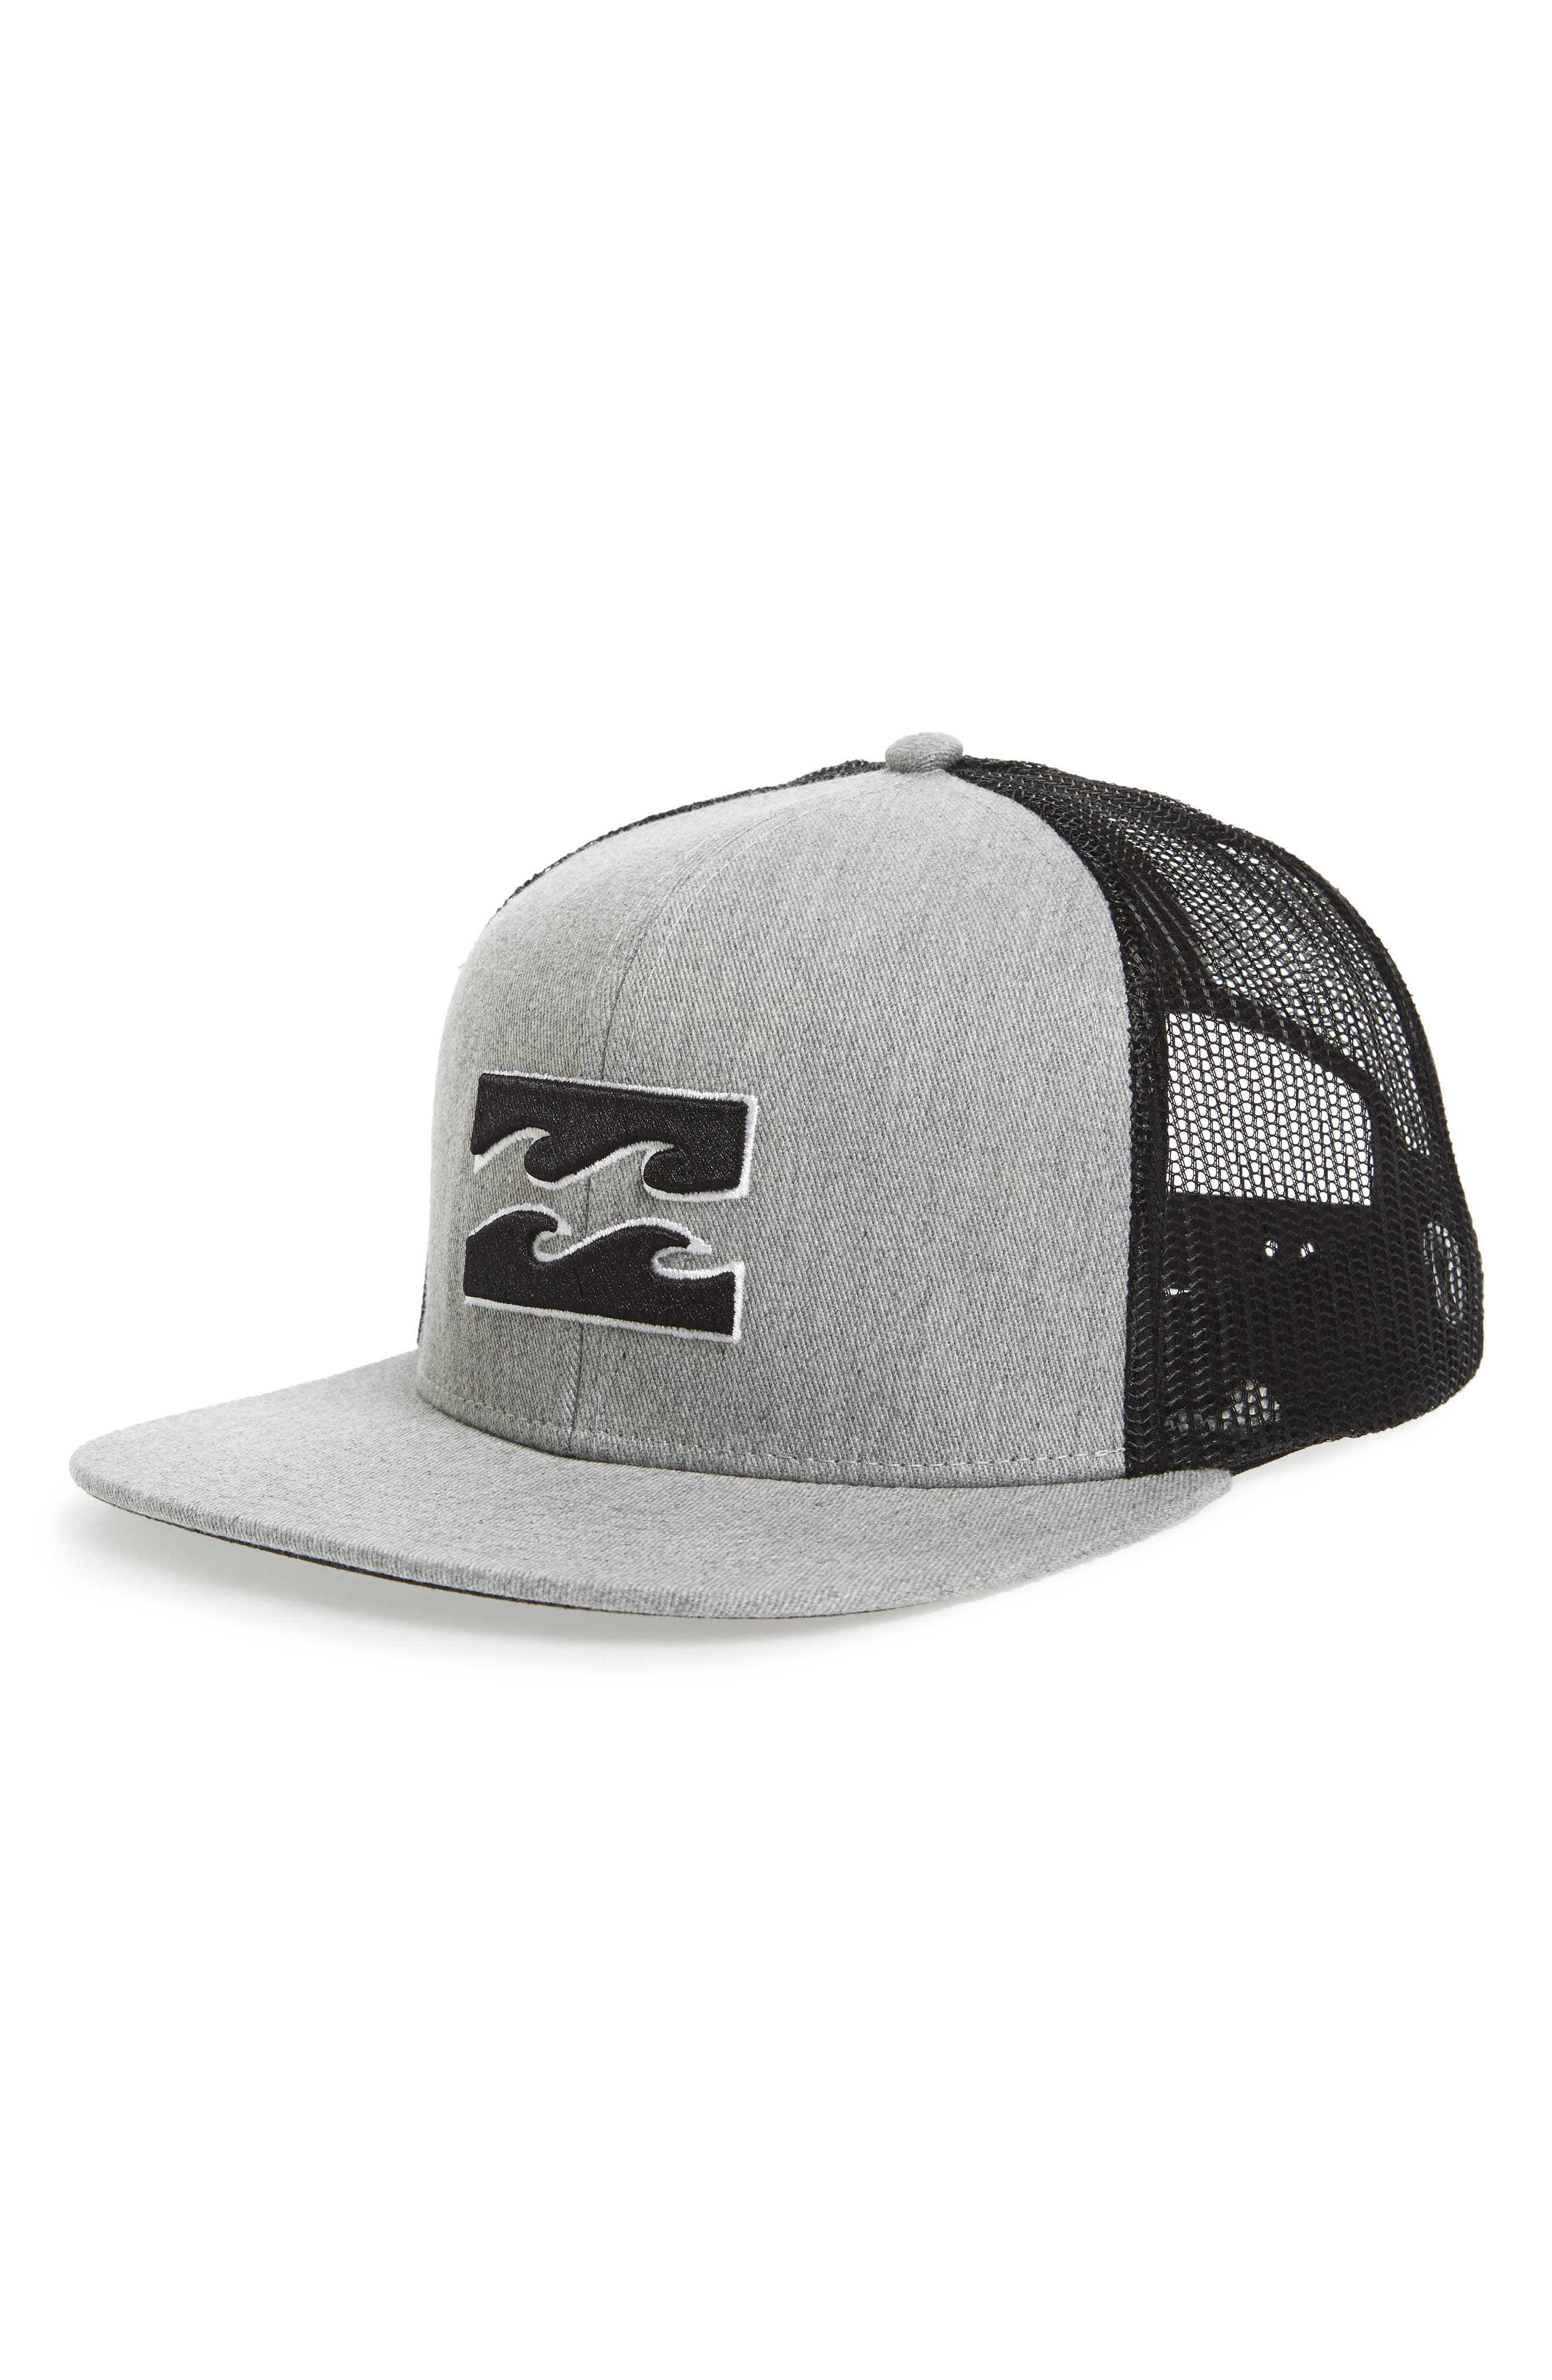 All Day Trucker Hat,                             Main thumbnail 2, color,